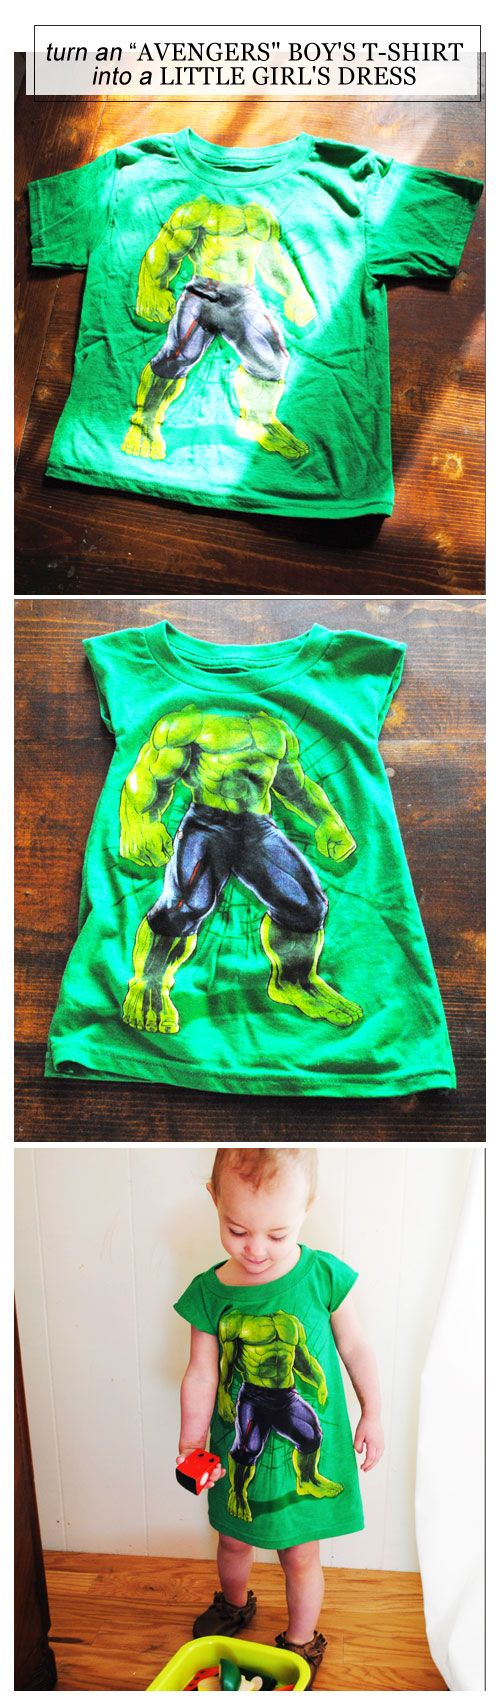 "In case you've got a little girl who also loves superheroes, here's how to turn an ""Avengers"" boy's T-shirt into a little girl's dress 